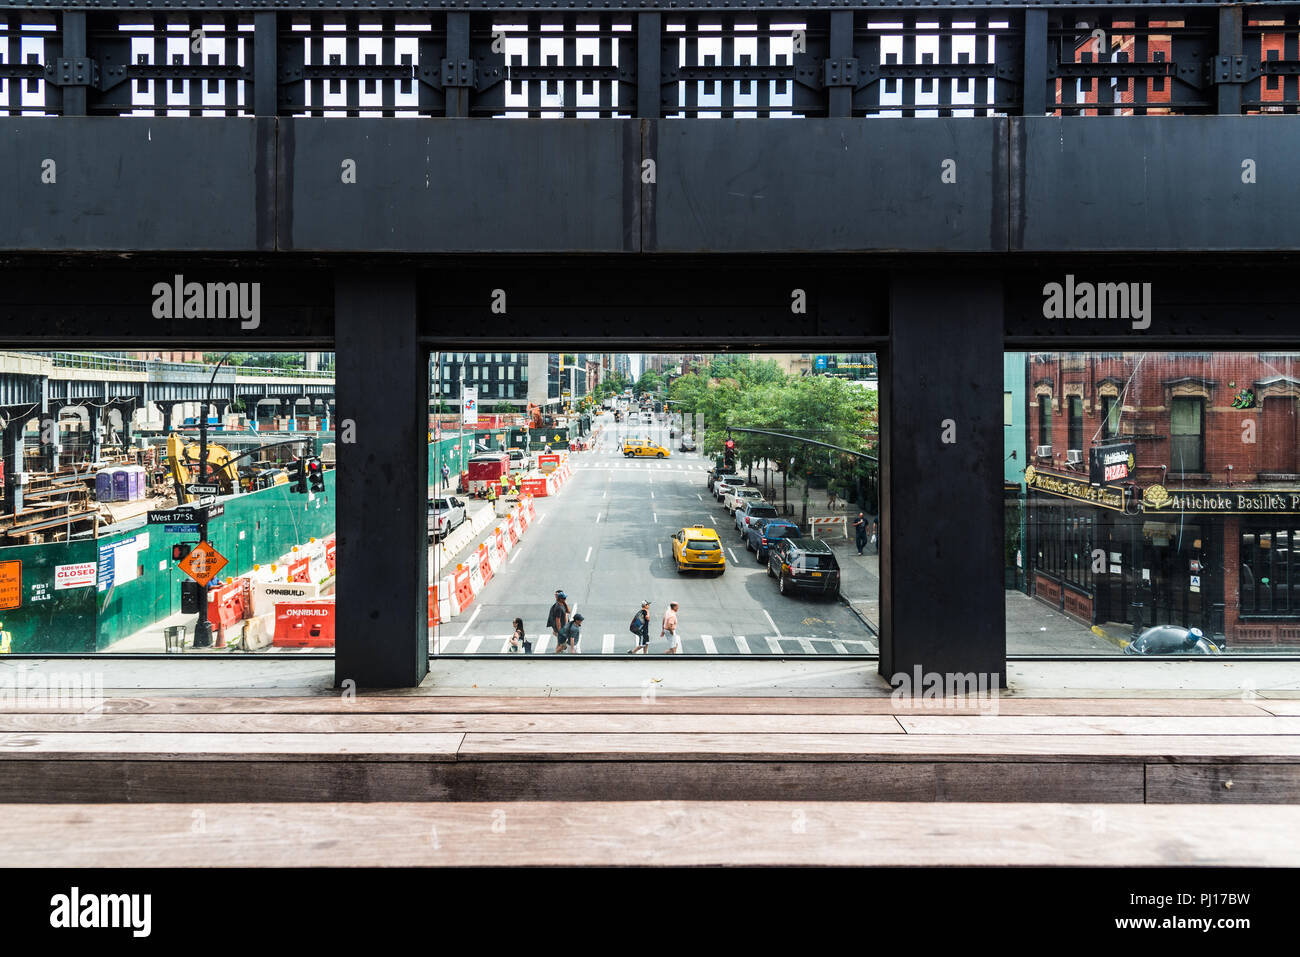 New York City, USA - June 22, 2018: Observatory in High Line. The High Line is an elevated linear park, greenway and rail trail. It was created on a f - Stock Image